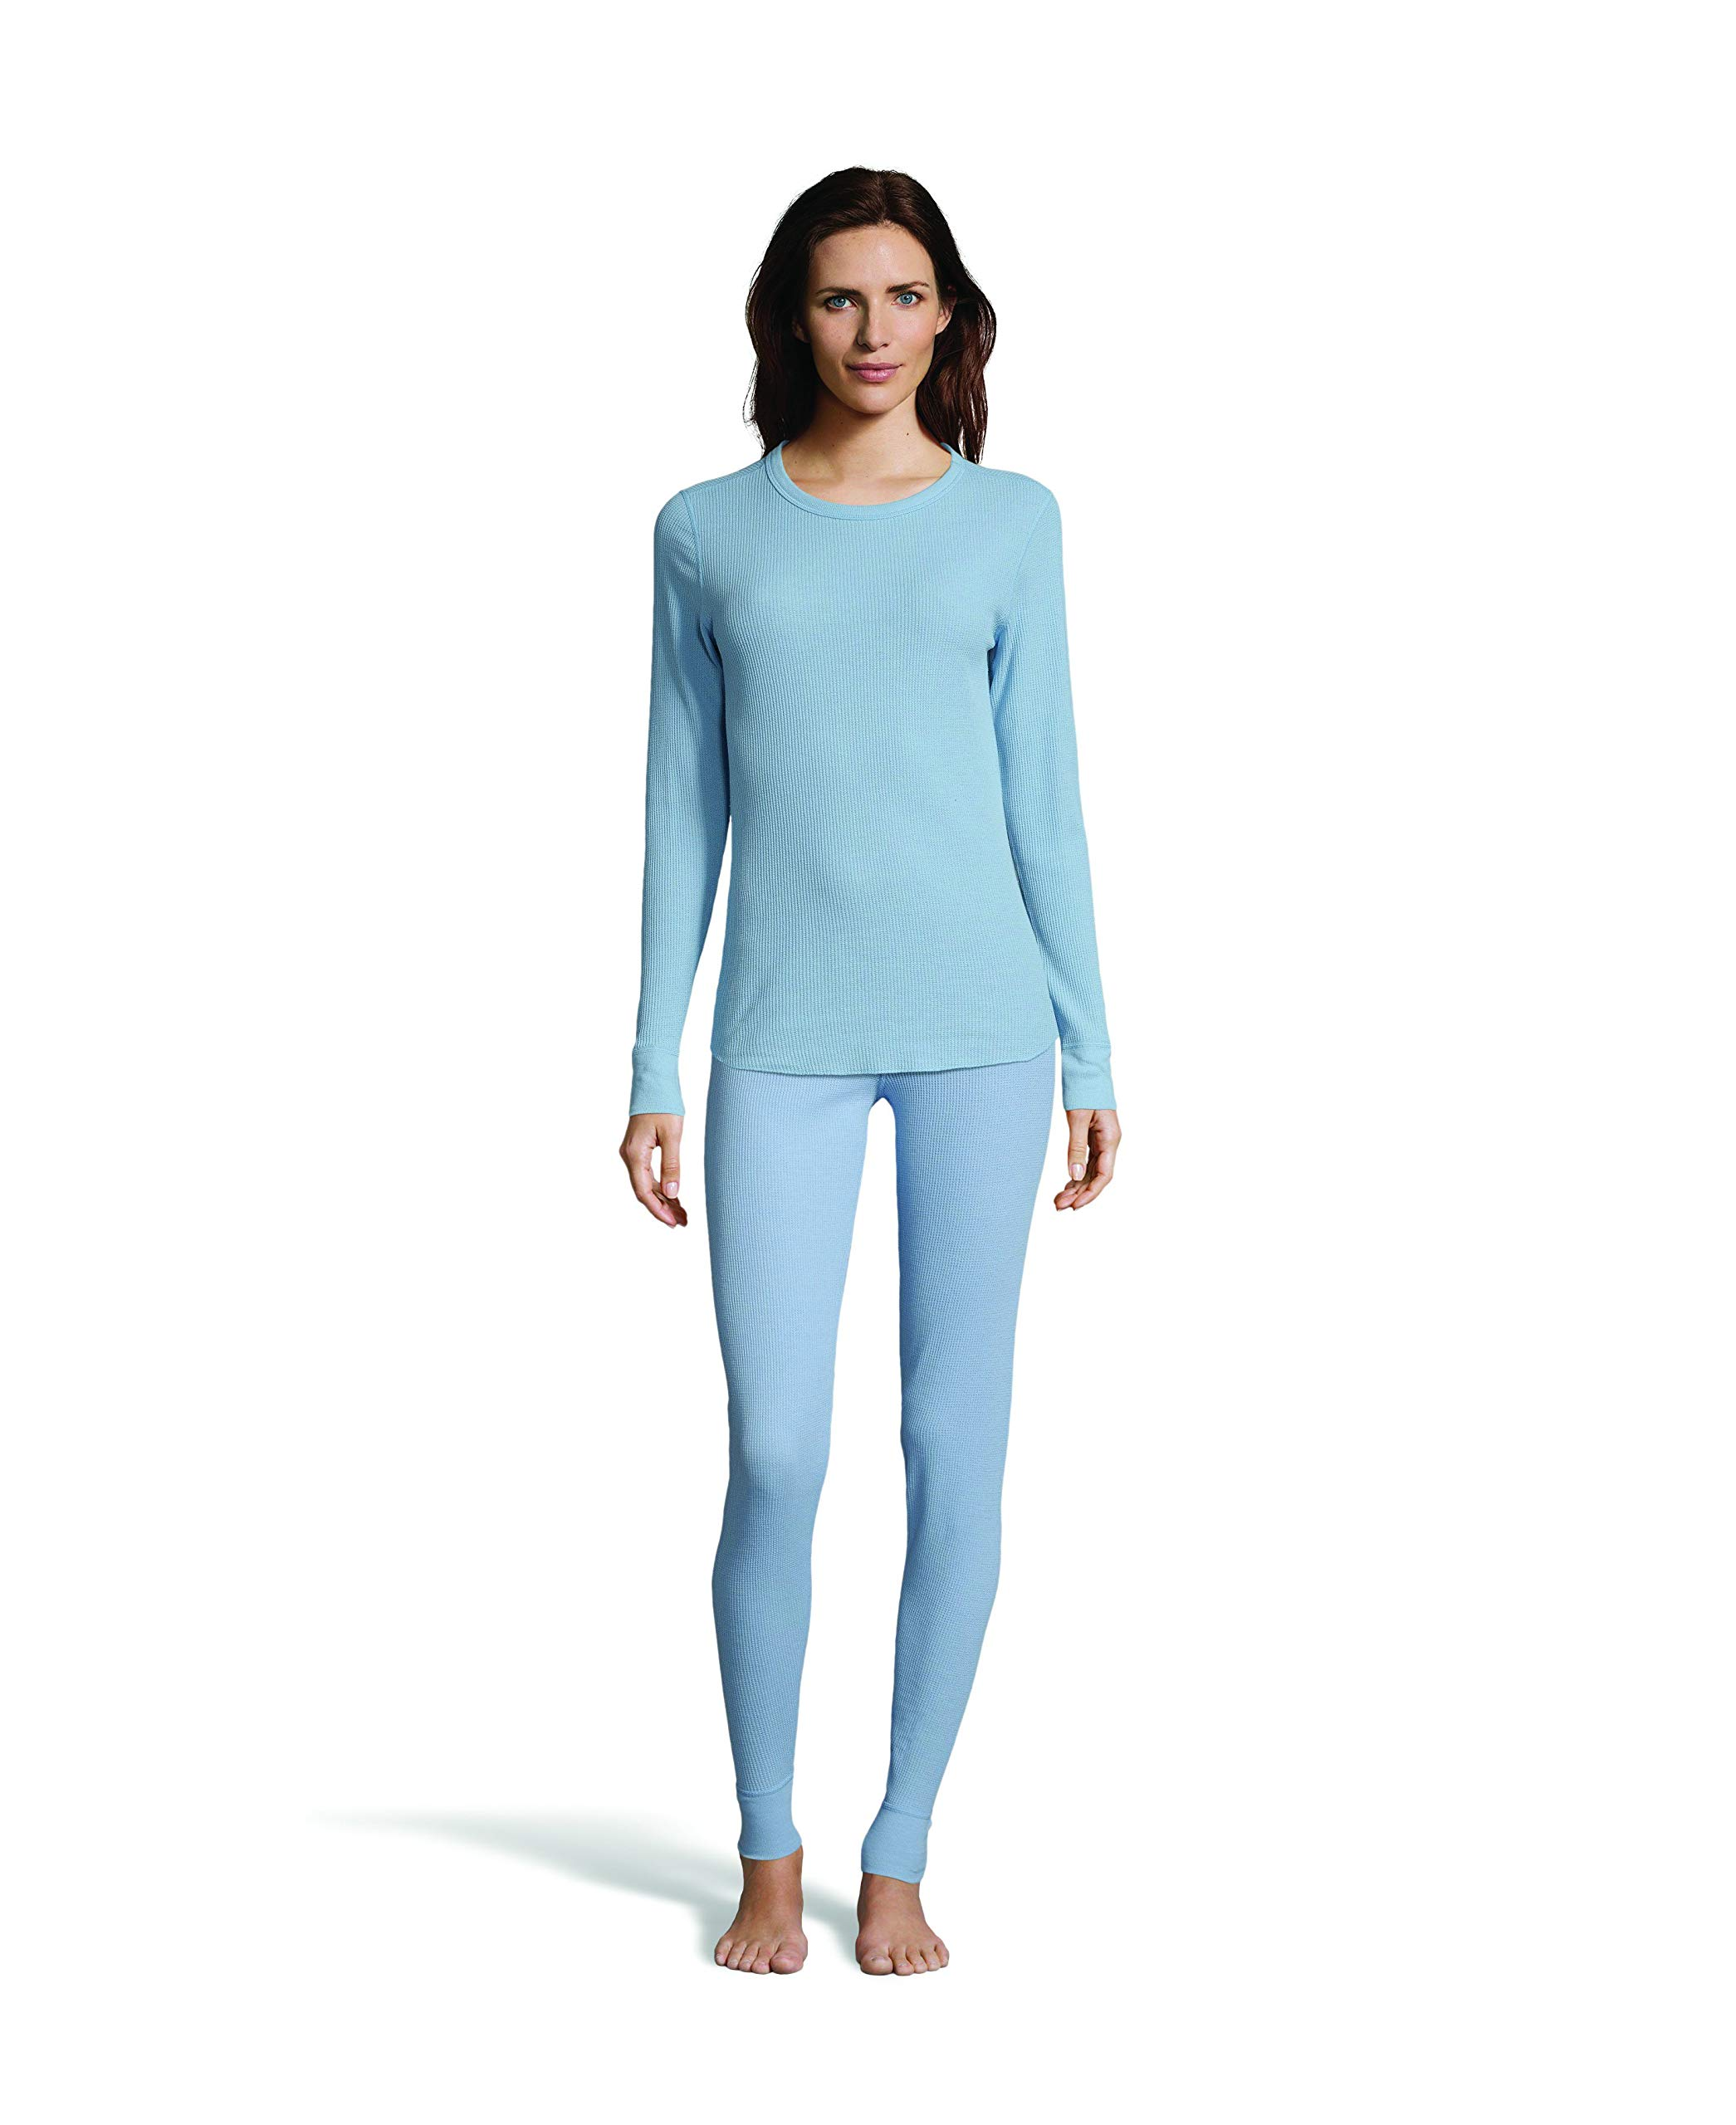 Hanes Women's Long Sleeve Thermal Waffle Knit Crew with FreshIQ and X-Temp Technology Dusty Blue by Hanes